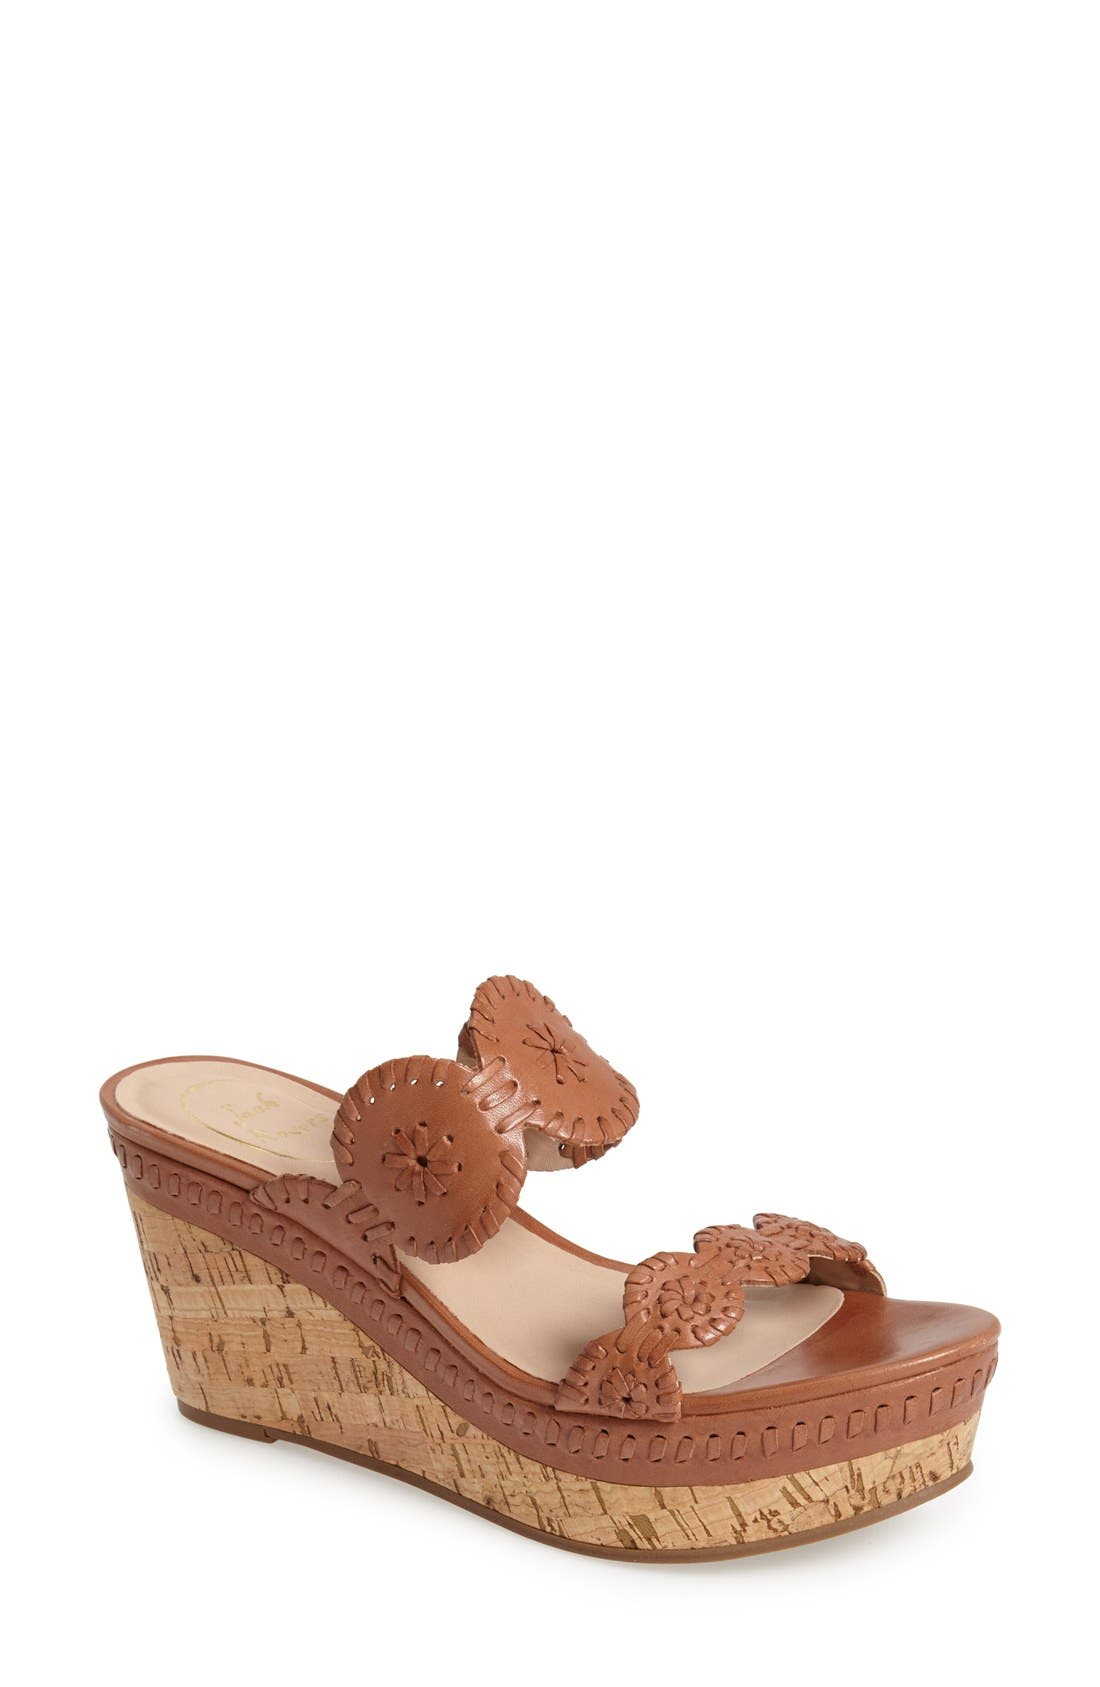 'Leigh' Wedge Sandal,                         Main,                         color, 602